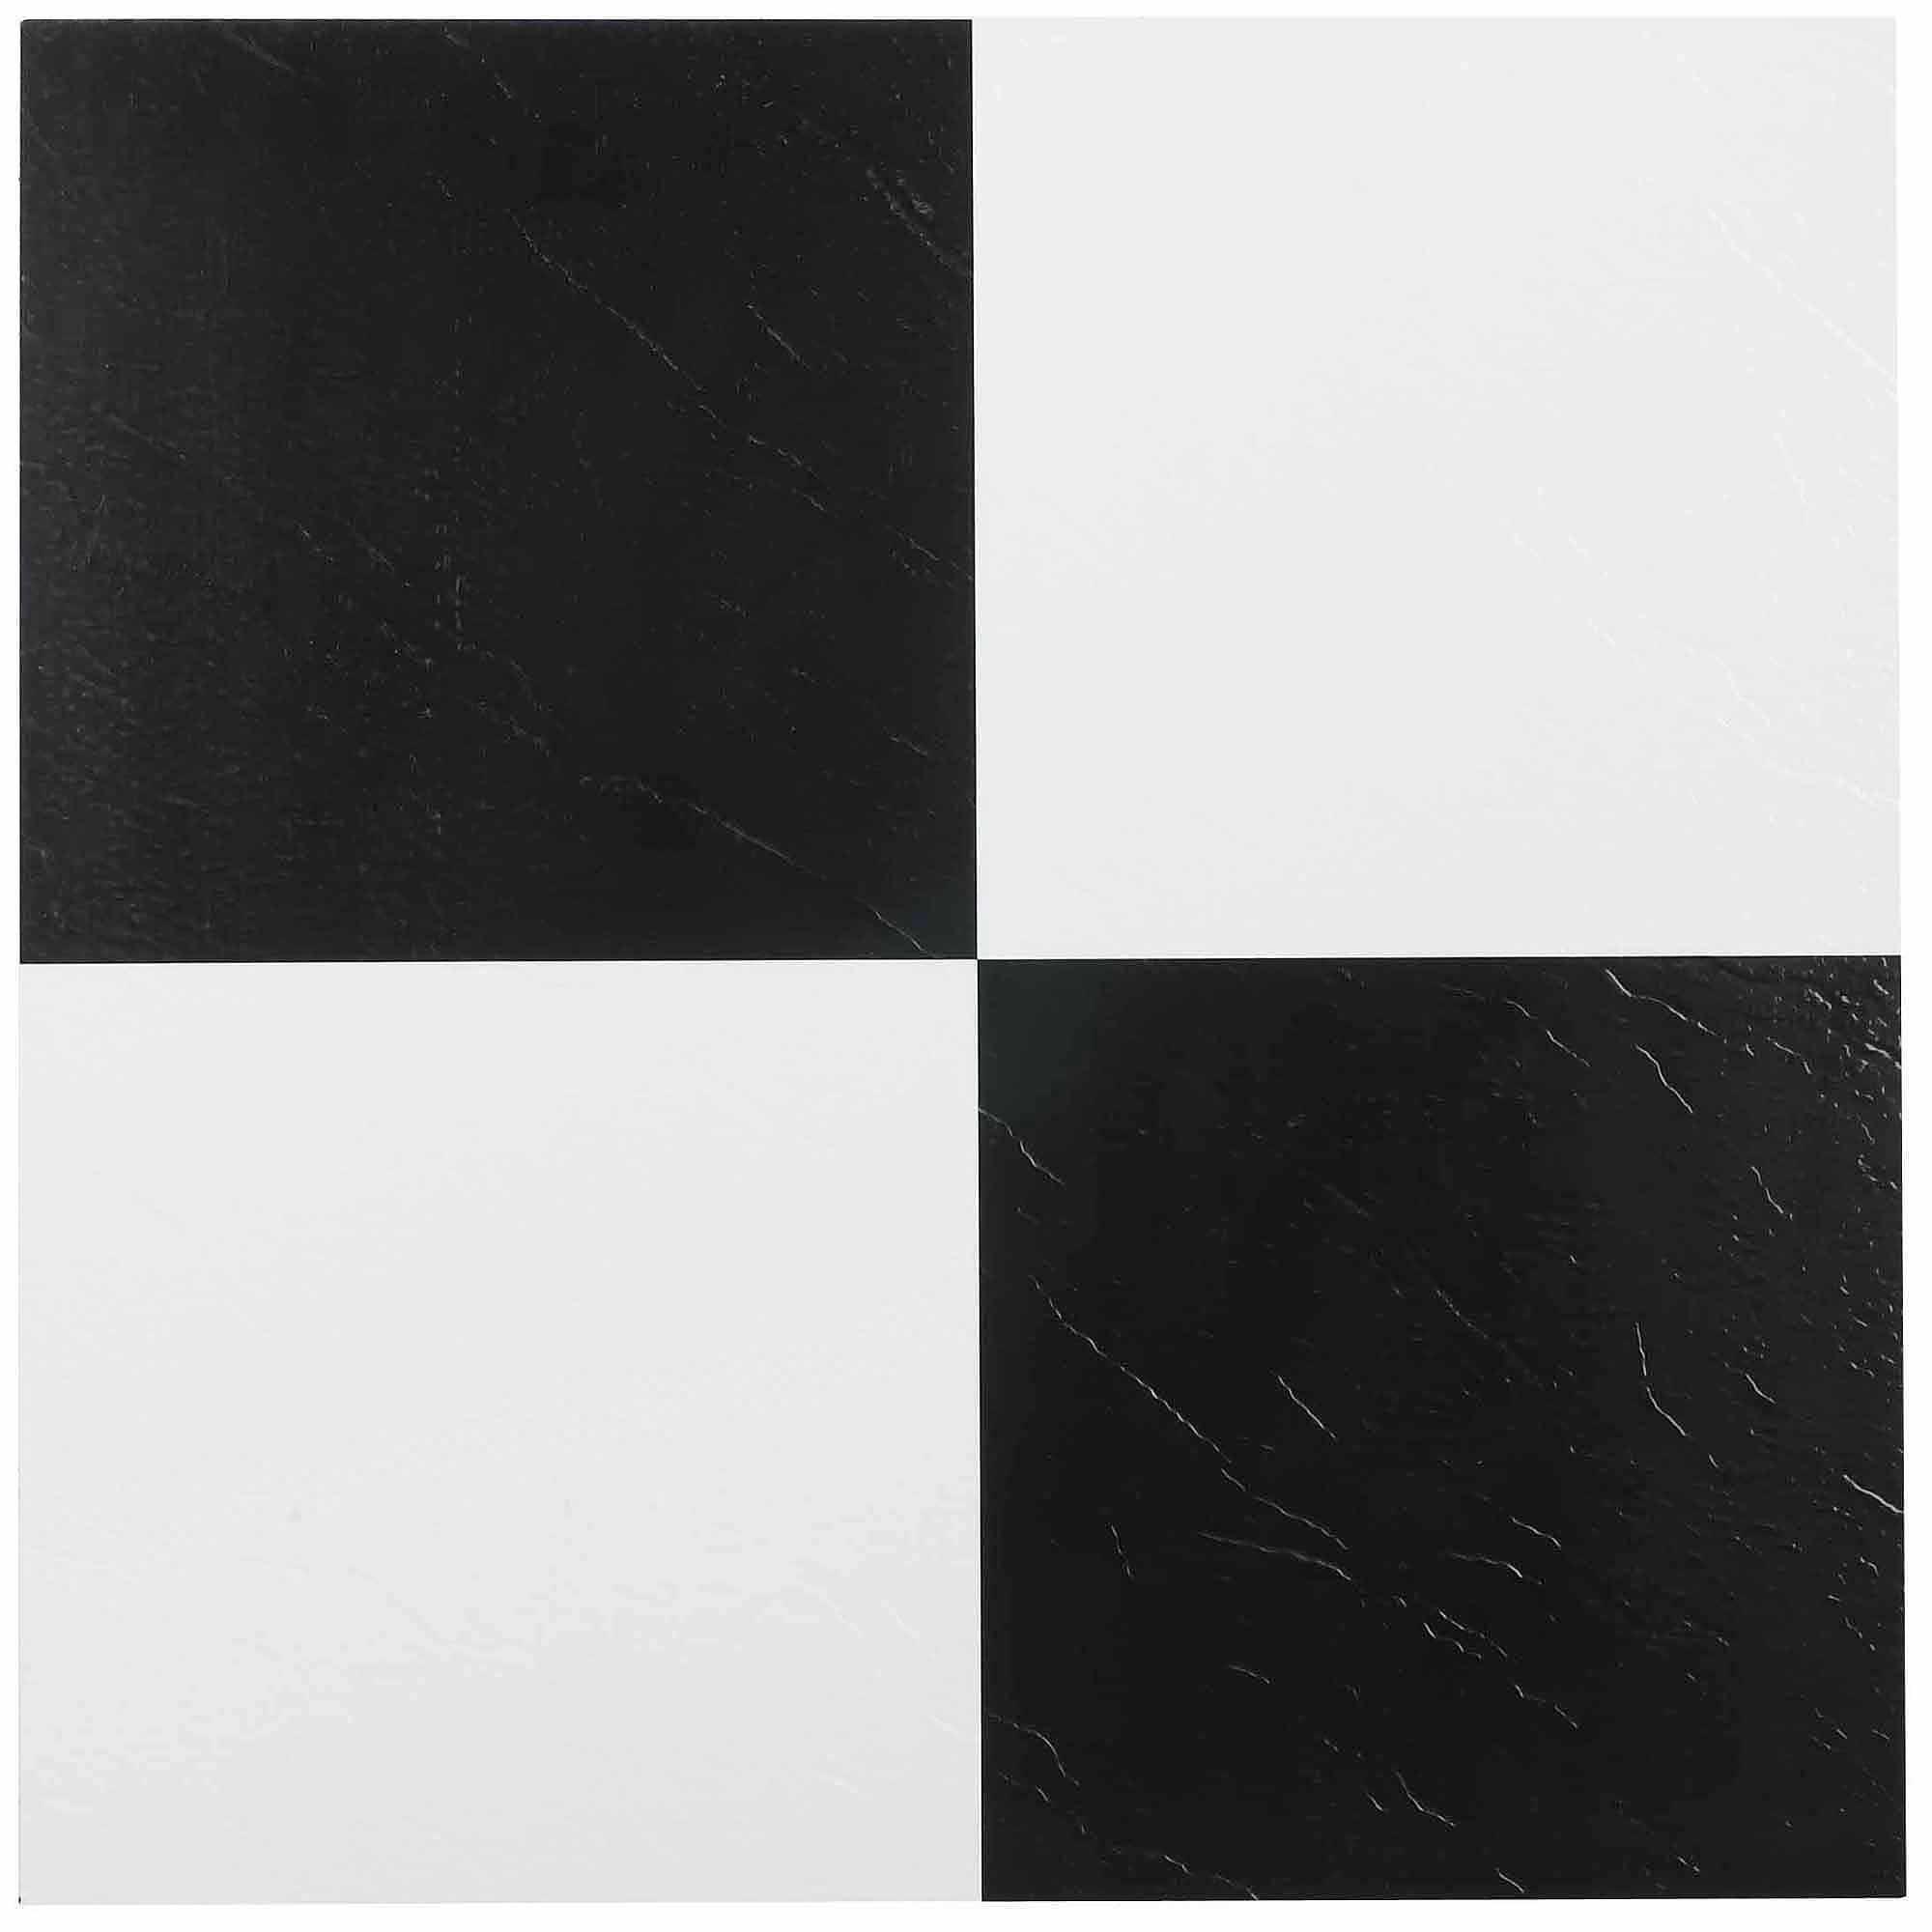 Vinyl flooring walmart nexus black white 12x12 self adhesive vinyl floor tile 20 tiles20 sq dailygadgetfo Image collections